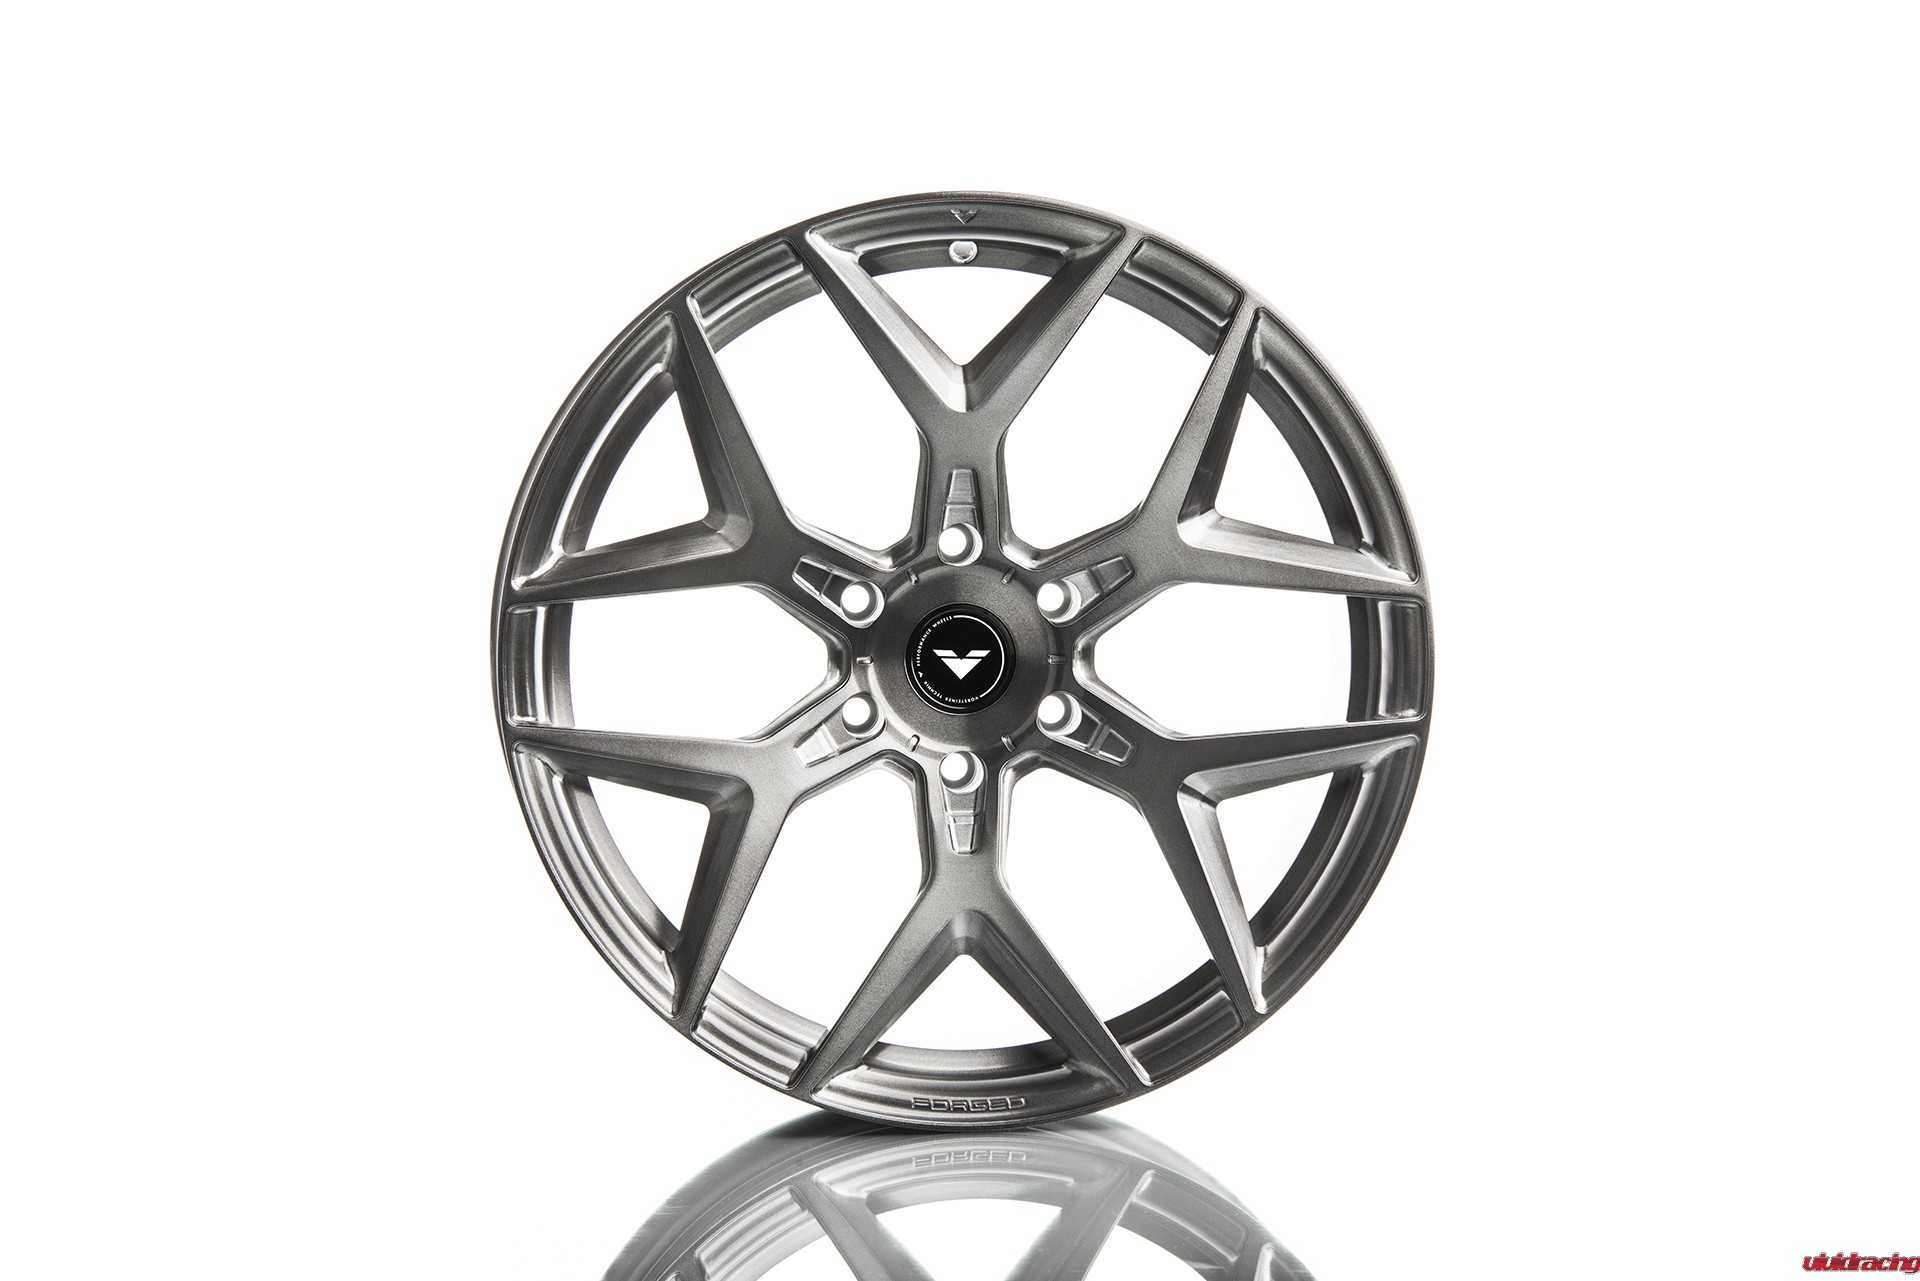 vorsteiner-forged-drs-601-truck-wheel_35599027834_o